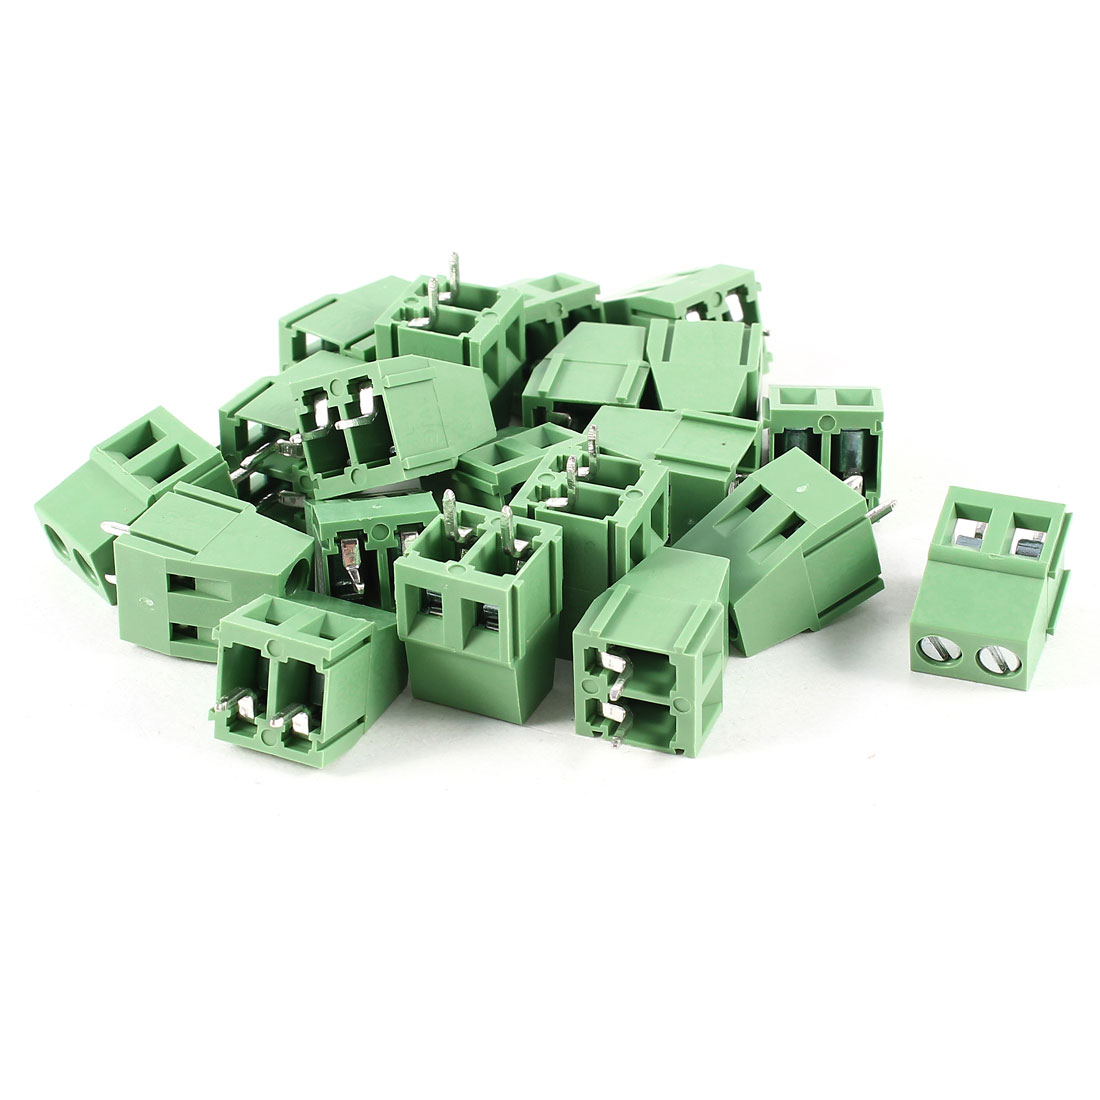 20 Pcs 2P 5mm Spacing PCB Mount Screw Terminal Block Connector 300V 10A AWG24-12